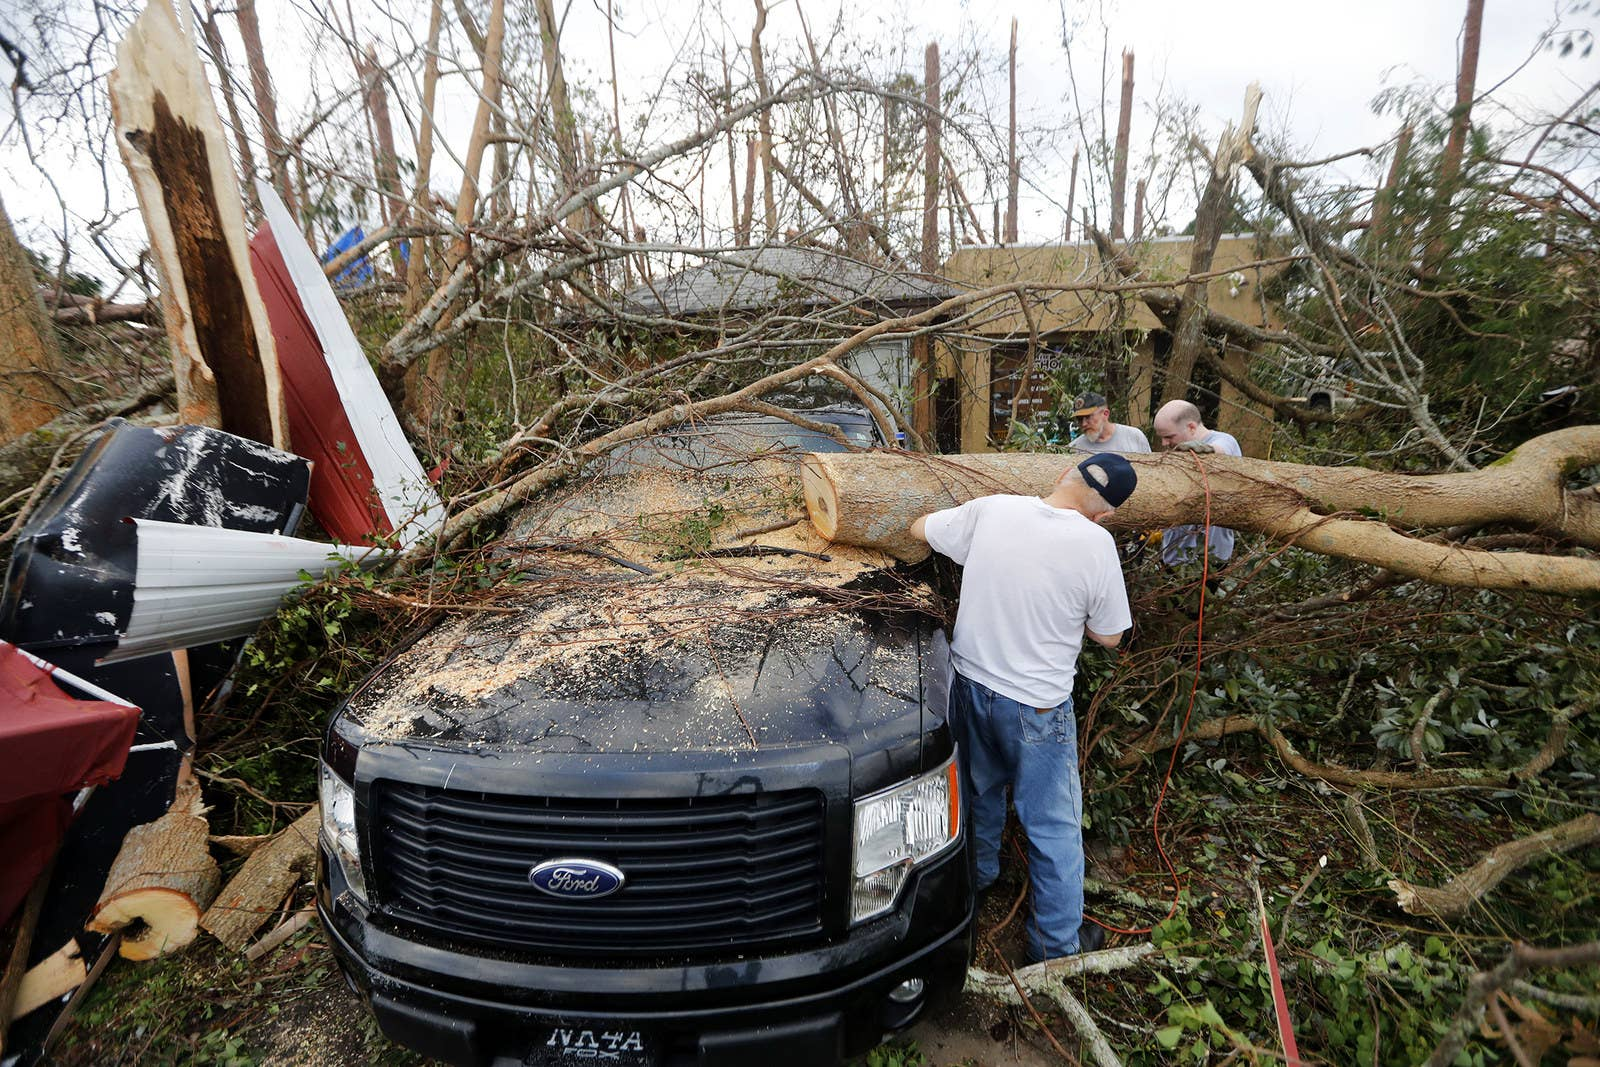 People cut away a tree that landed on a vehicle in Panama City, Florida.